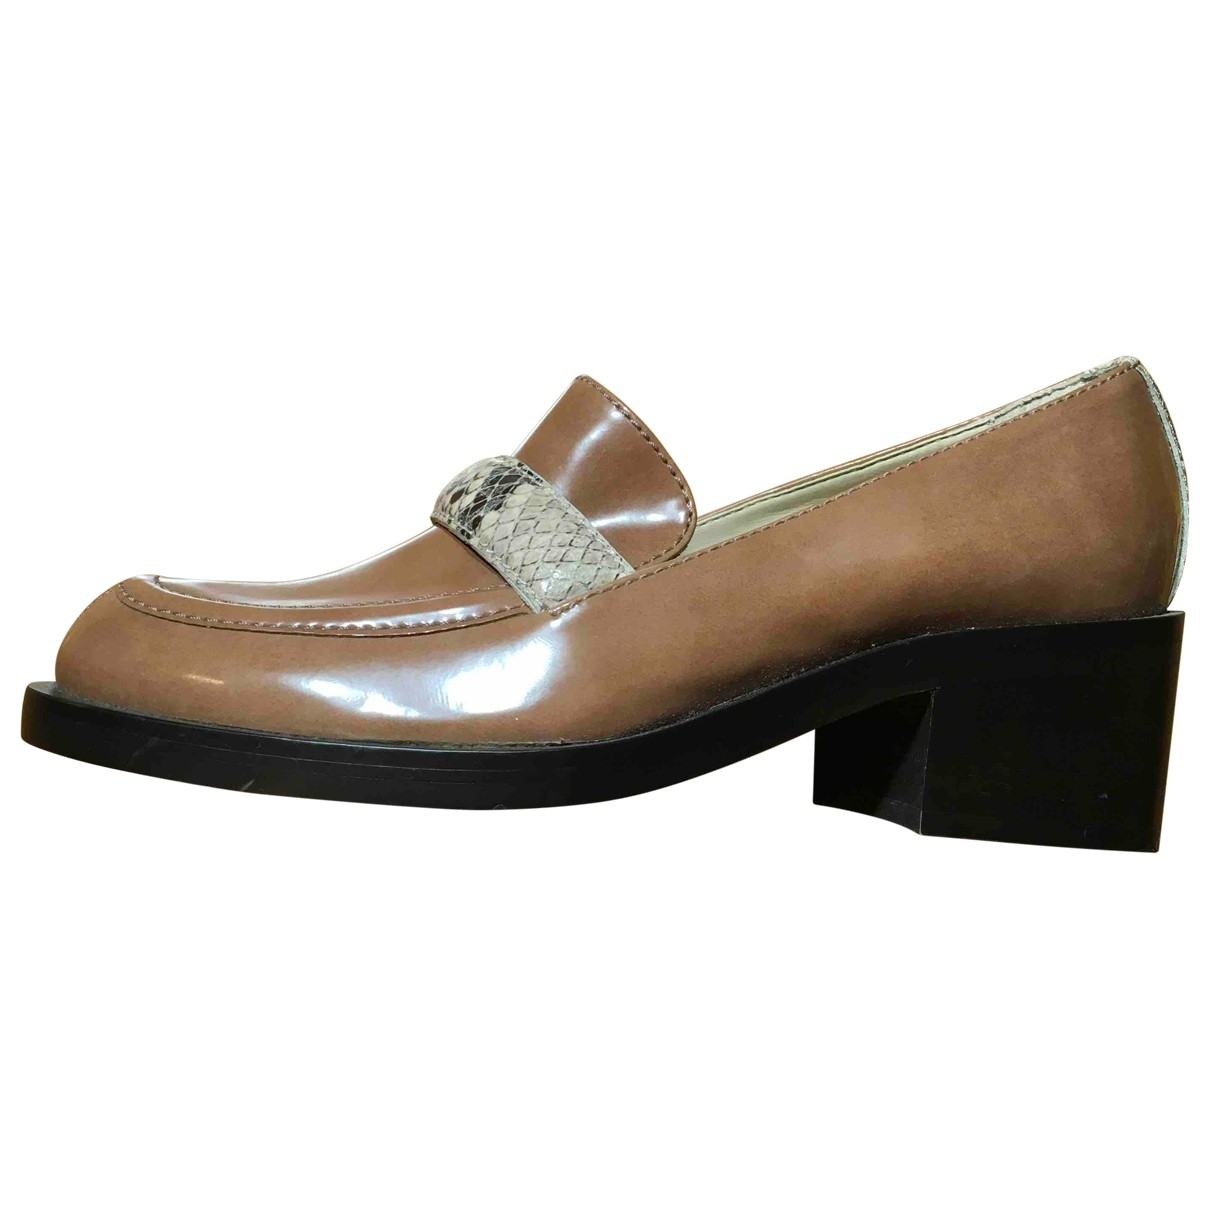 Stella Mccartney \N Beige Leather Flats for Women 36 EU